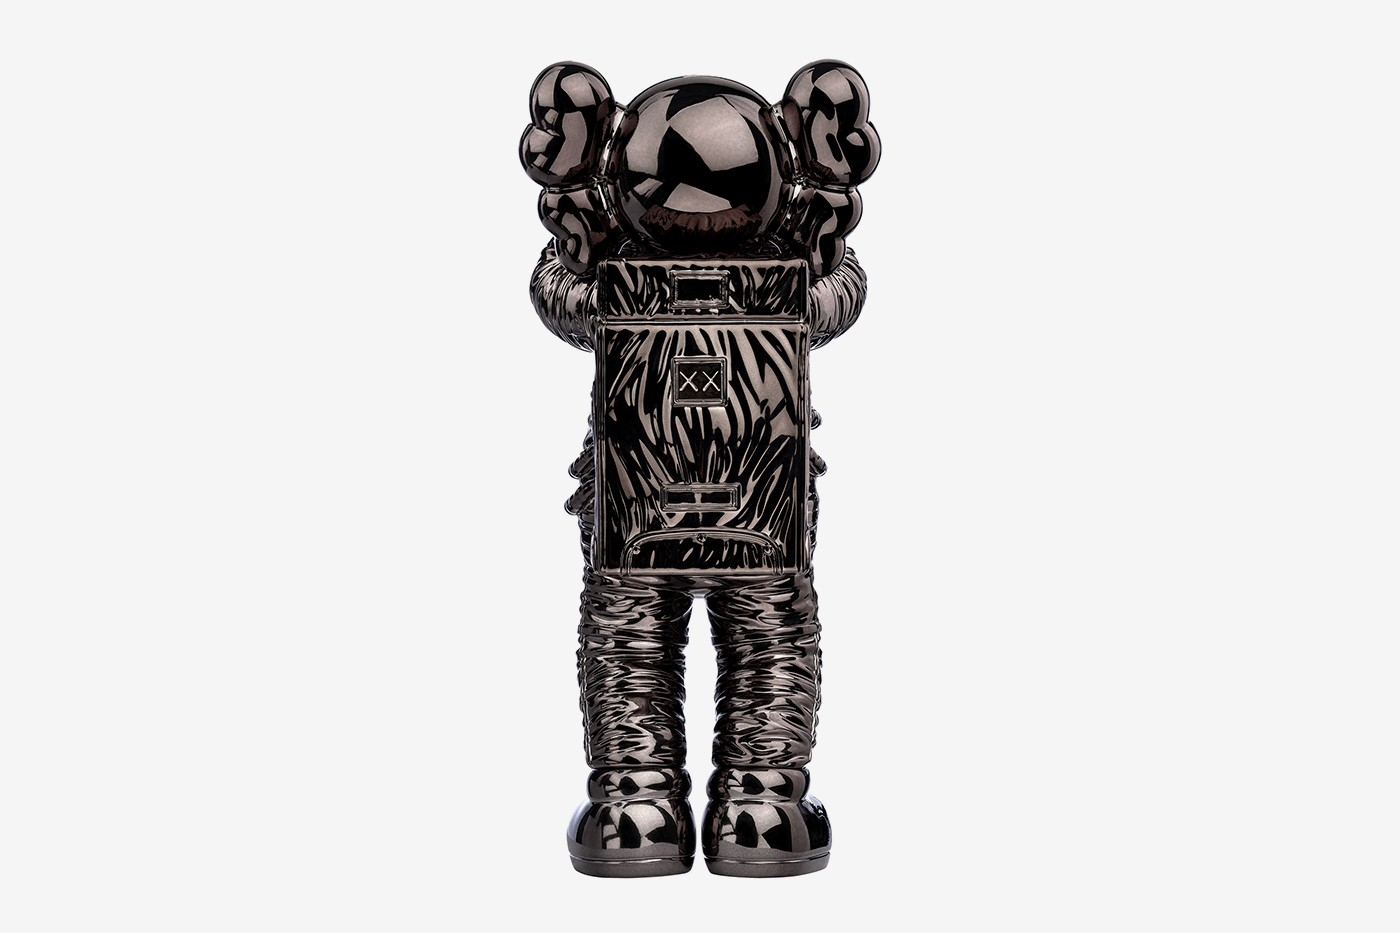 'KAWS:HOLIDAY SPACE' Companion AllRightsReserved figure collectible 11.5 inches astronaut three colorways gold silver black